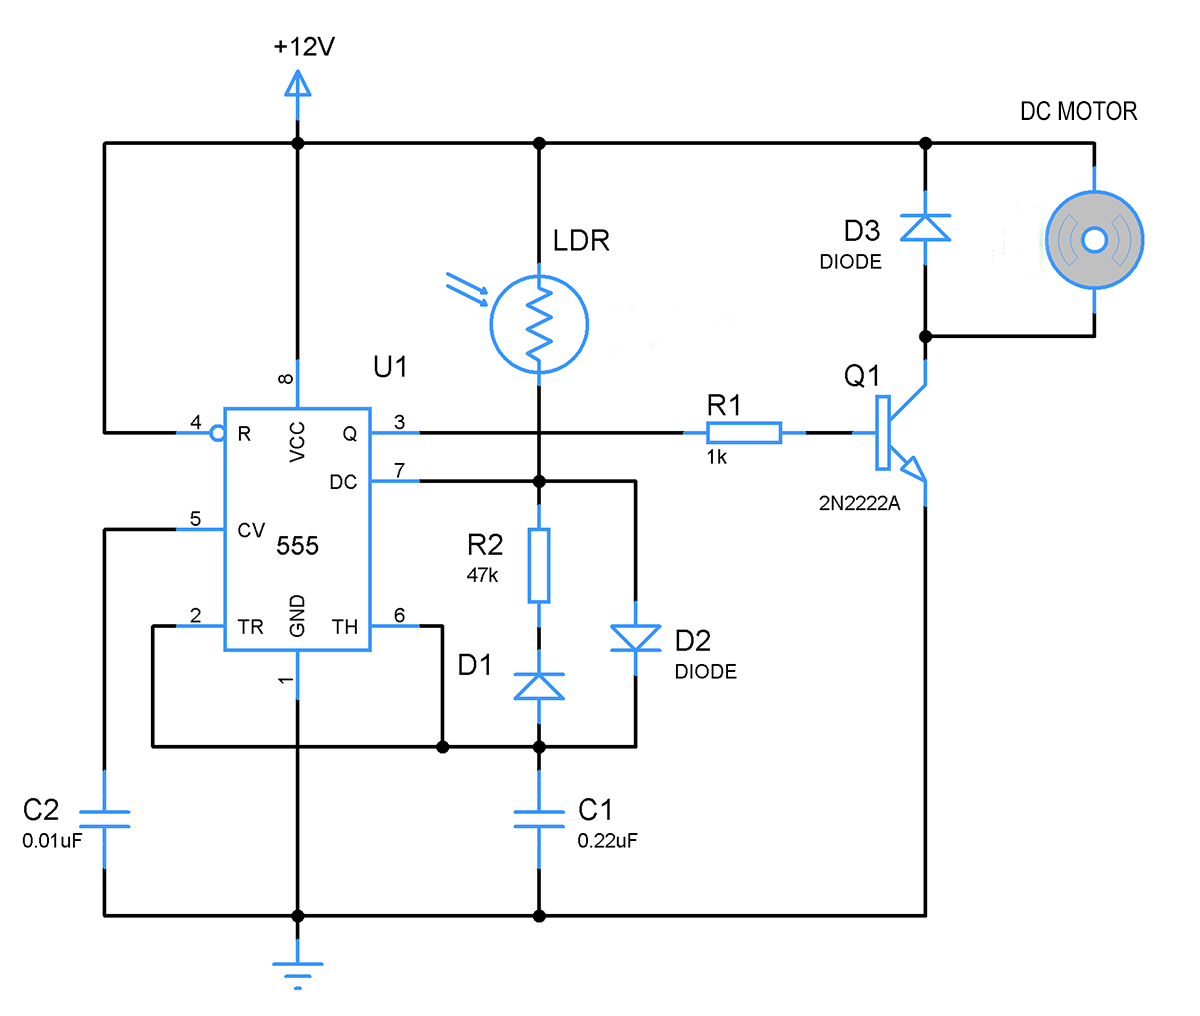 Light Controlled Led Lights And Dc Fan Using Ic 555 Gadgetronicx Schematic Wiring Diagram Motor Controller Circuit With Ne555 You Could Try Out Another Variant Of This By Replacing The Leds A Will Work In Similar Nature Control Speed